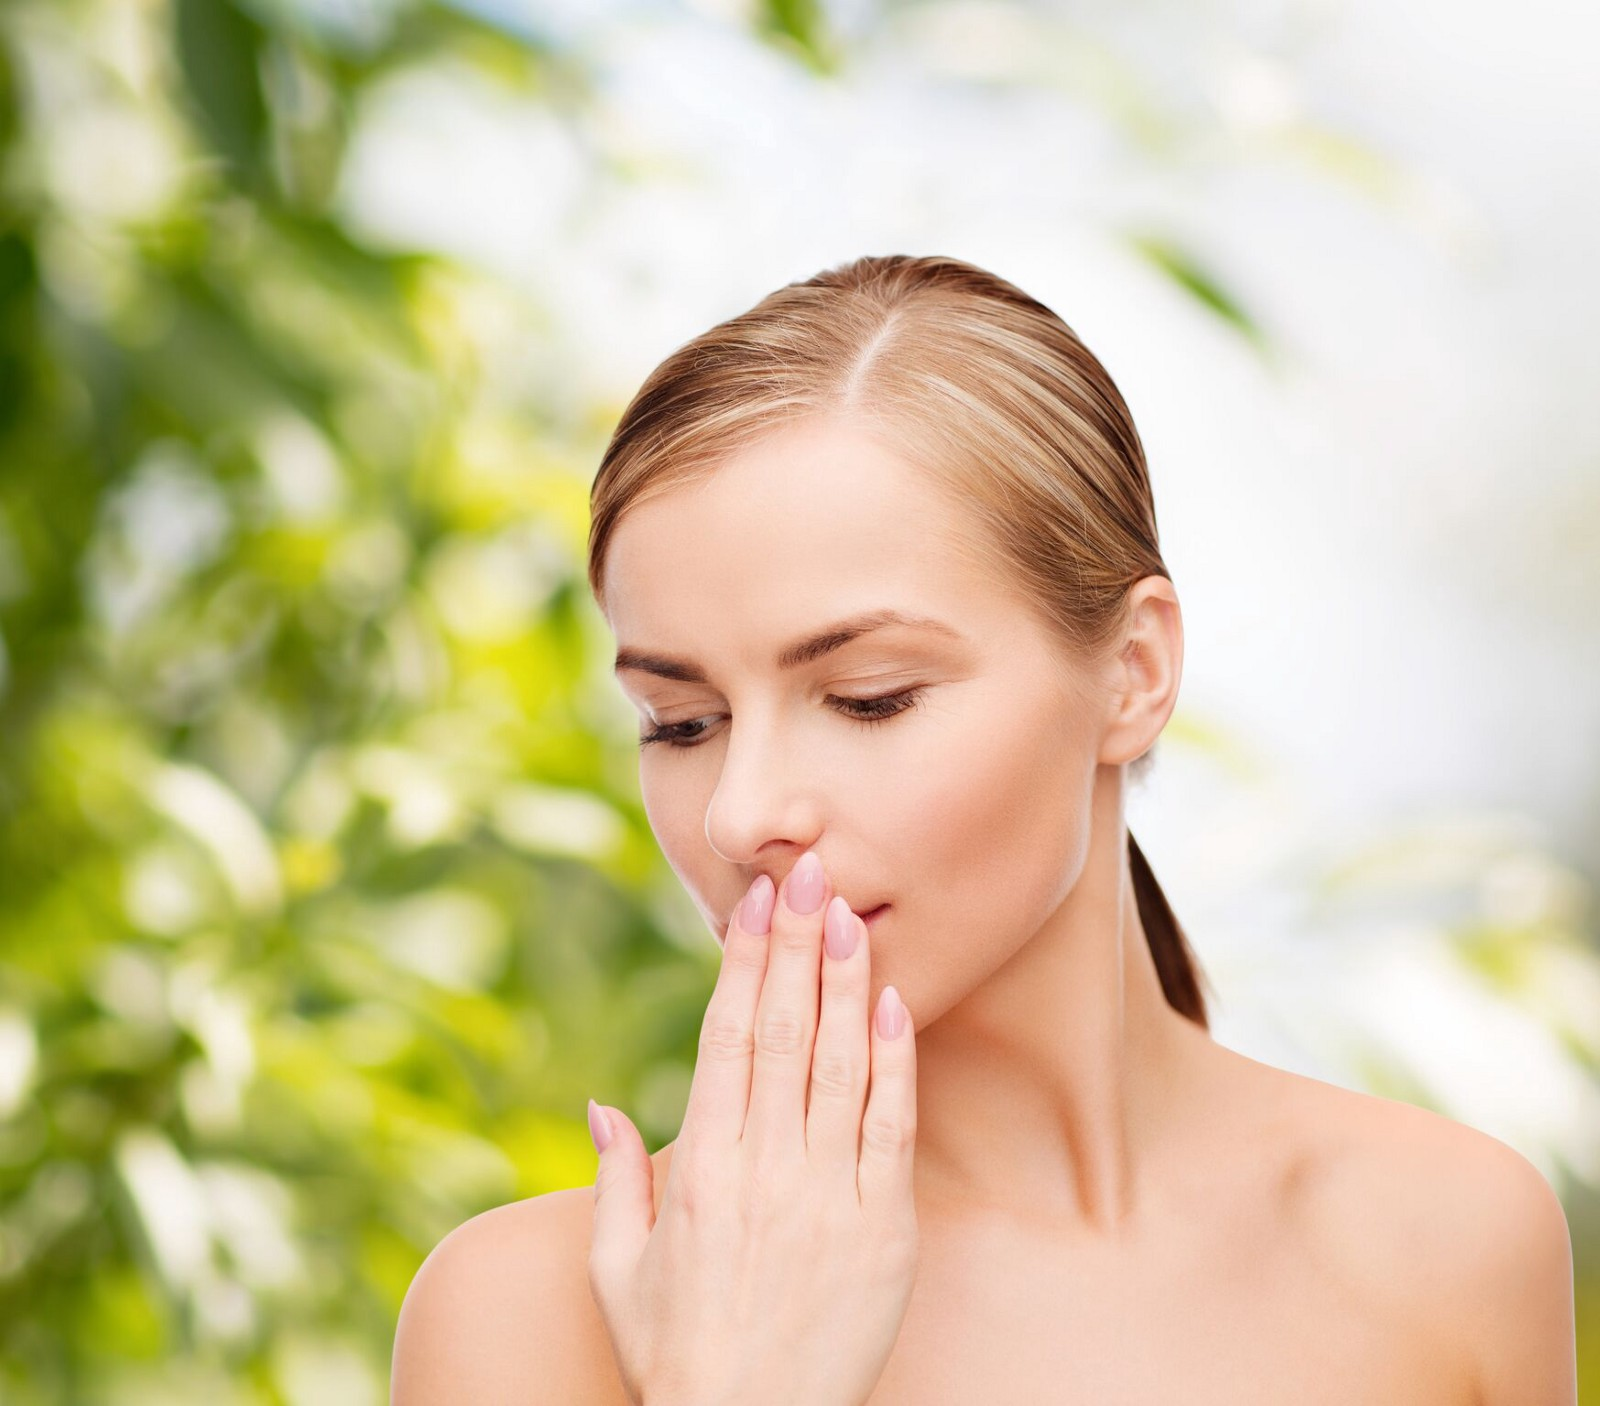 woman covering her mouth unable to tell the truth